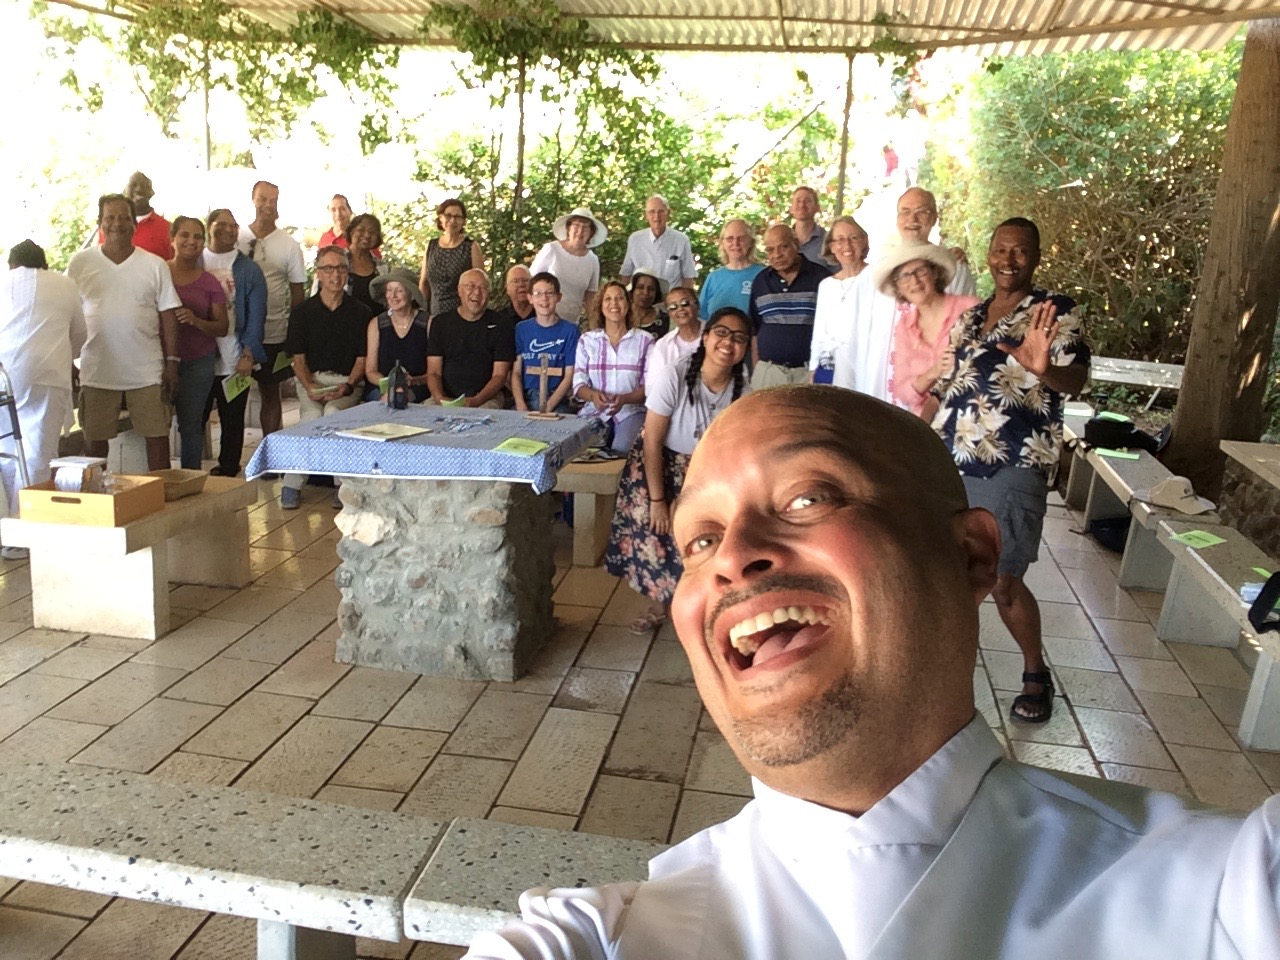 A selfie by our leader, Deacon Curtis Turner, as we celebrate after our Mass at the Church of the Beatitudes.